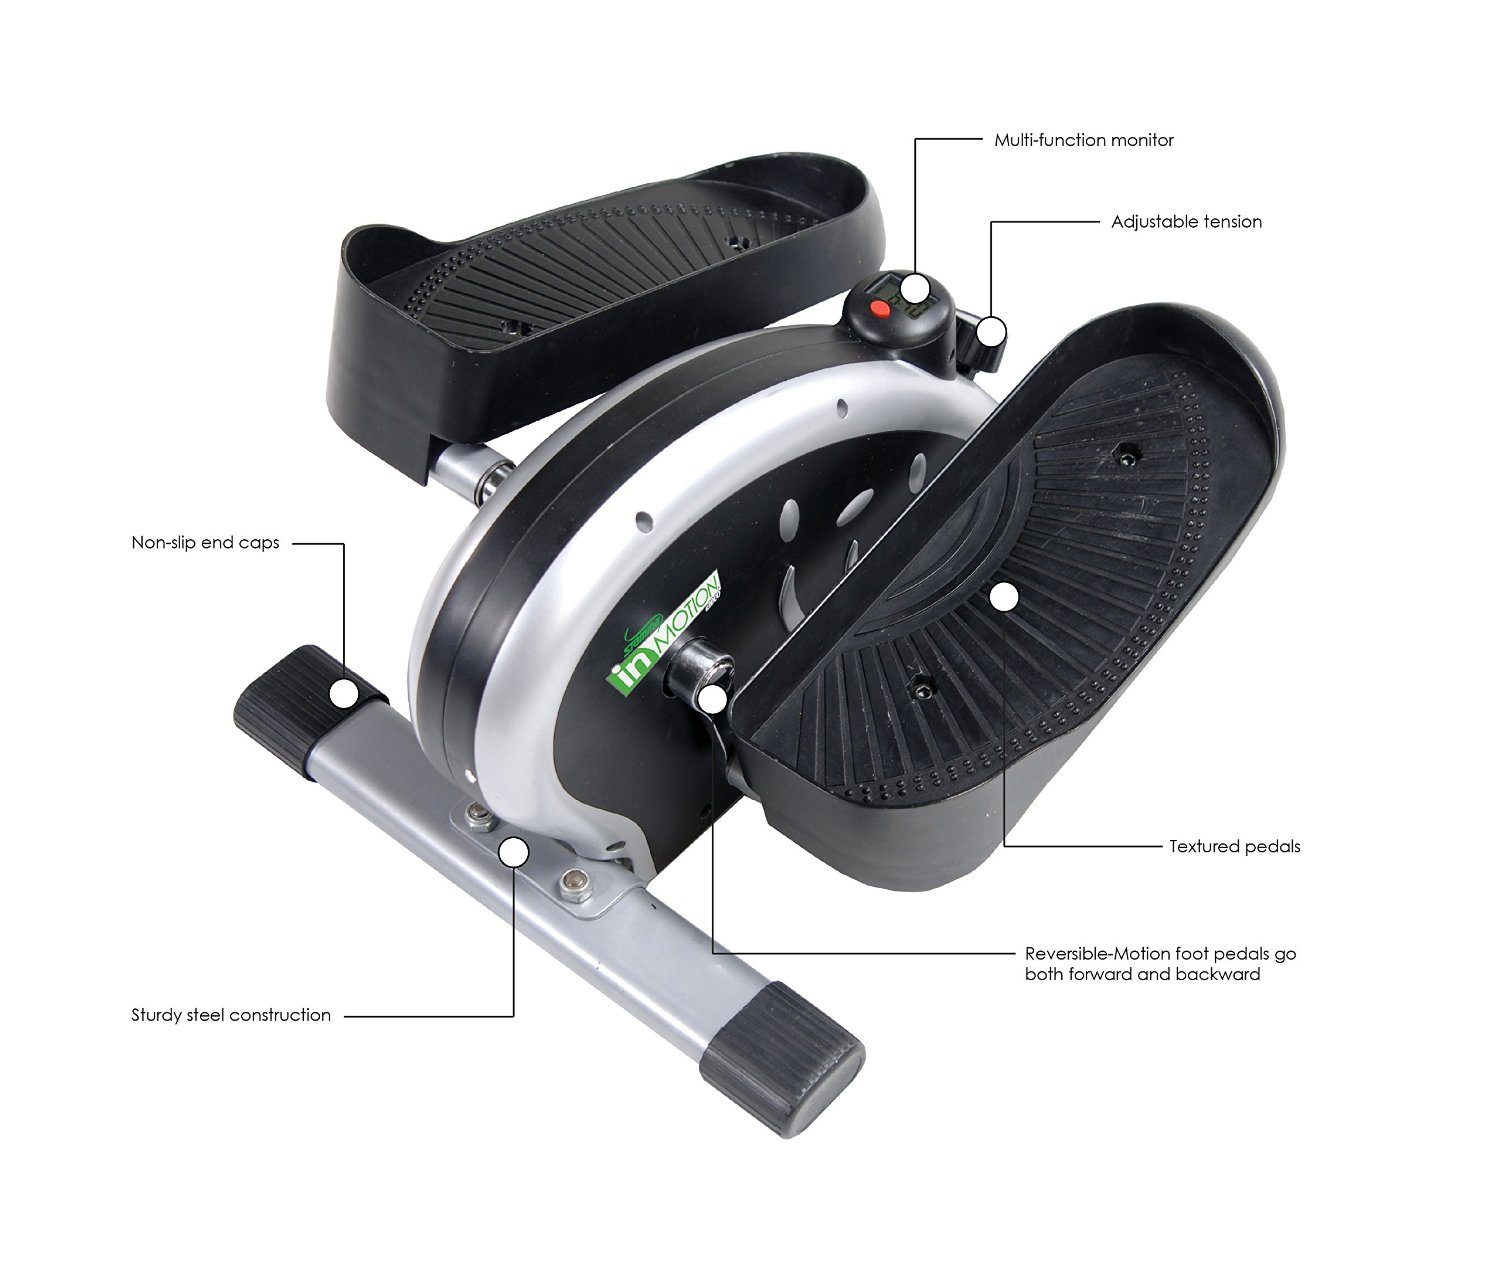 Stamina 55-1610 InMotion E1000 Elliptical Trainer Reviews